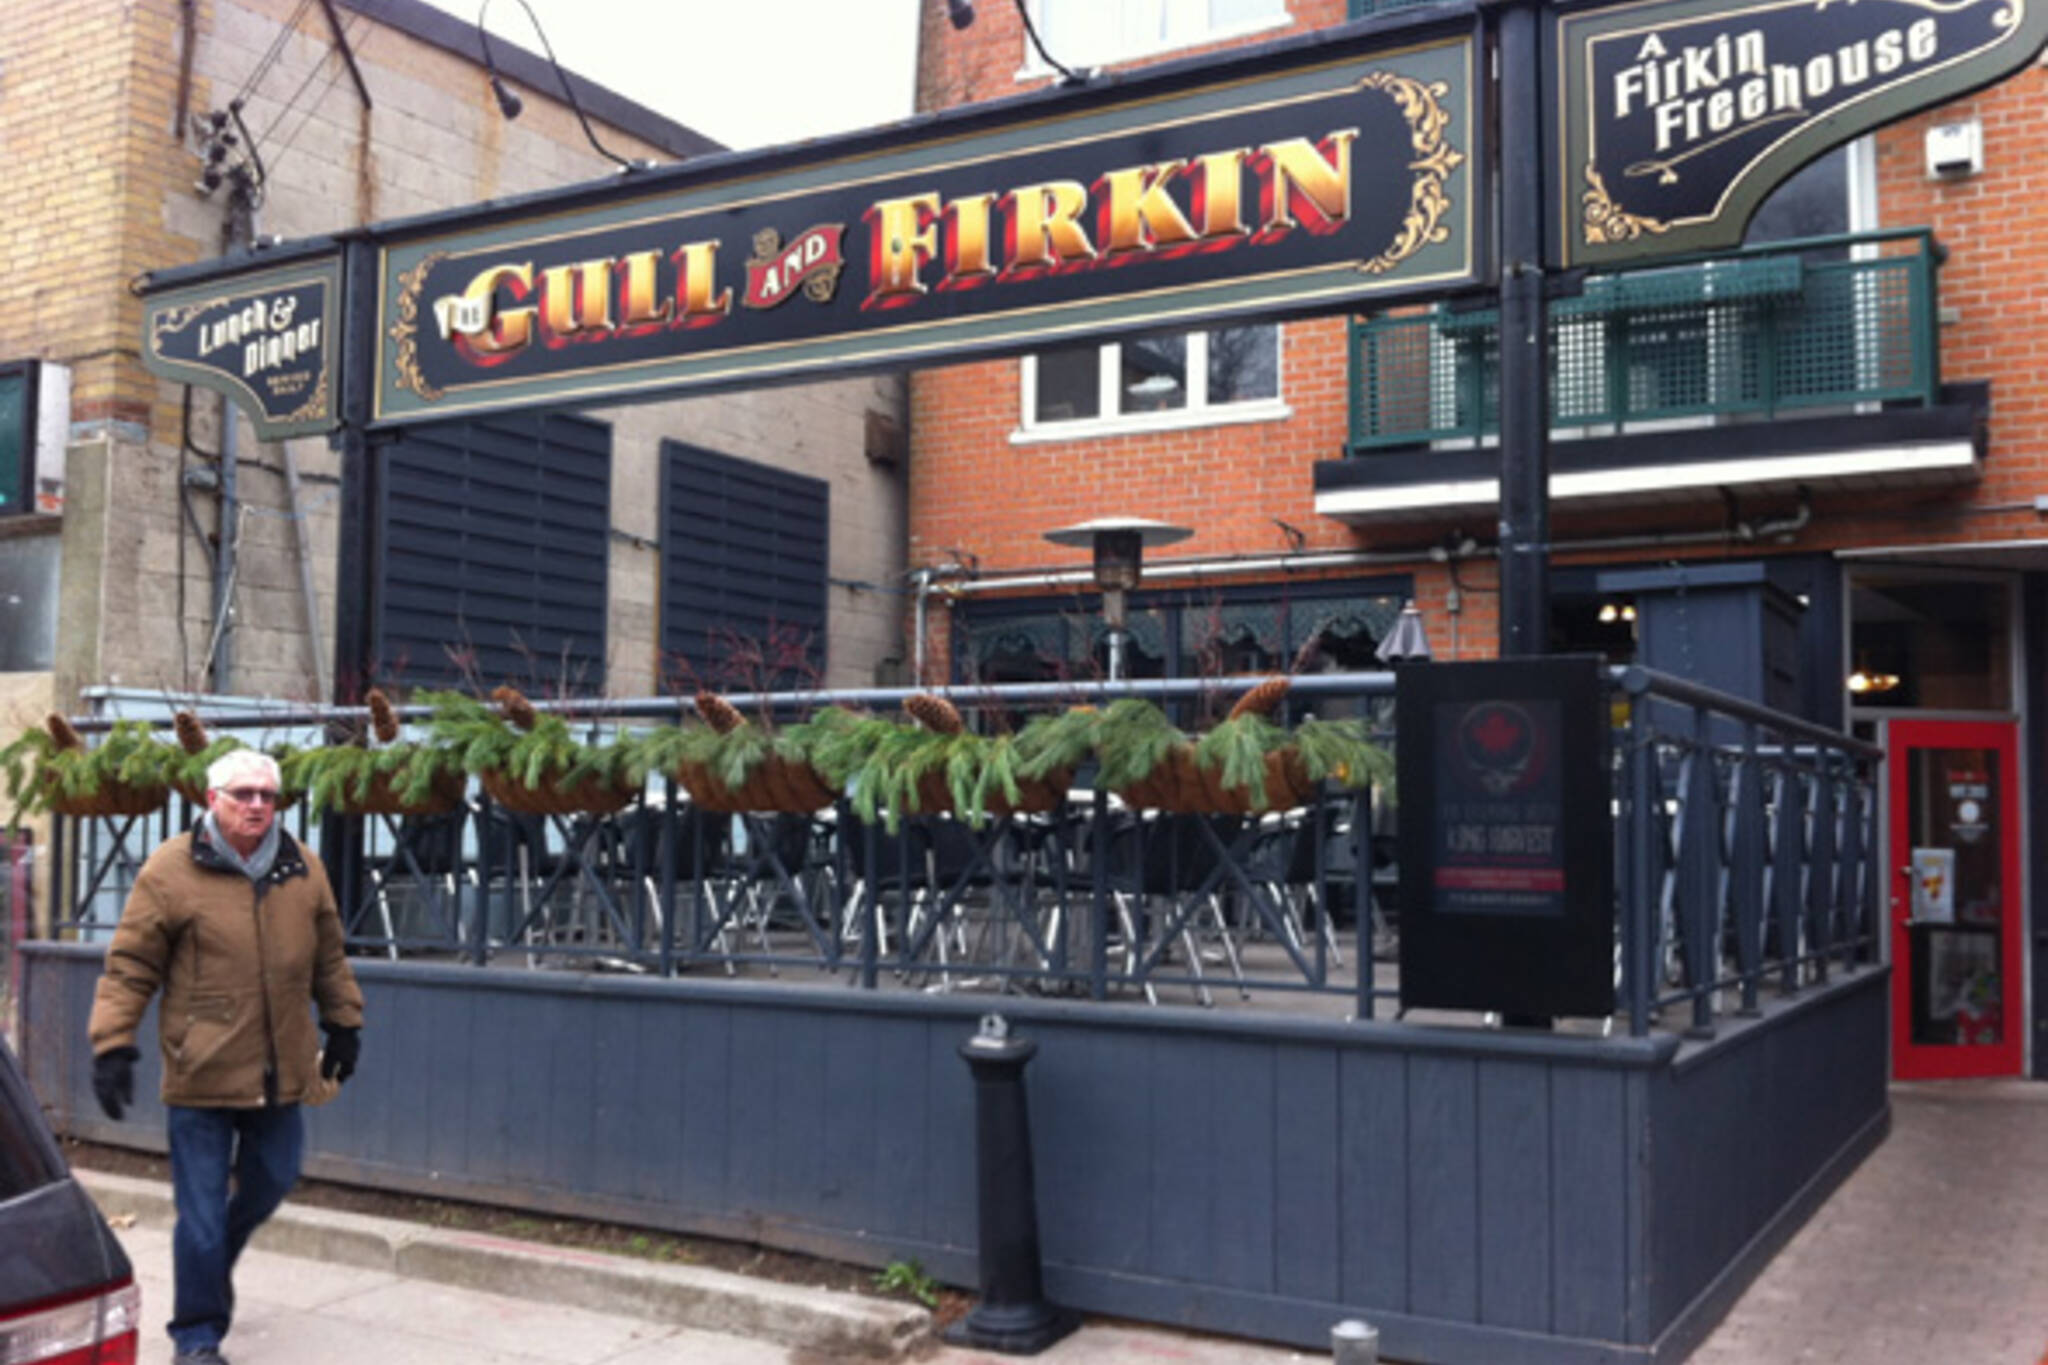 The Gull and Firkin